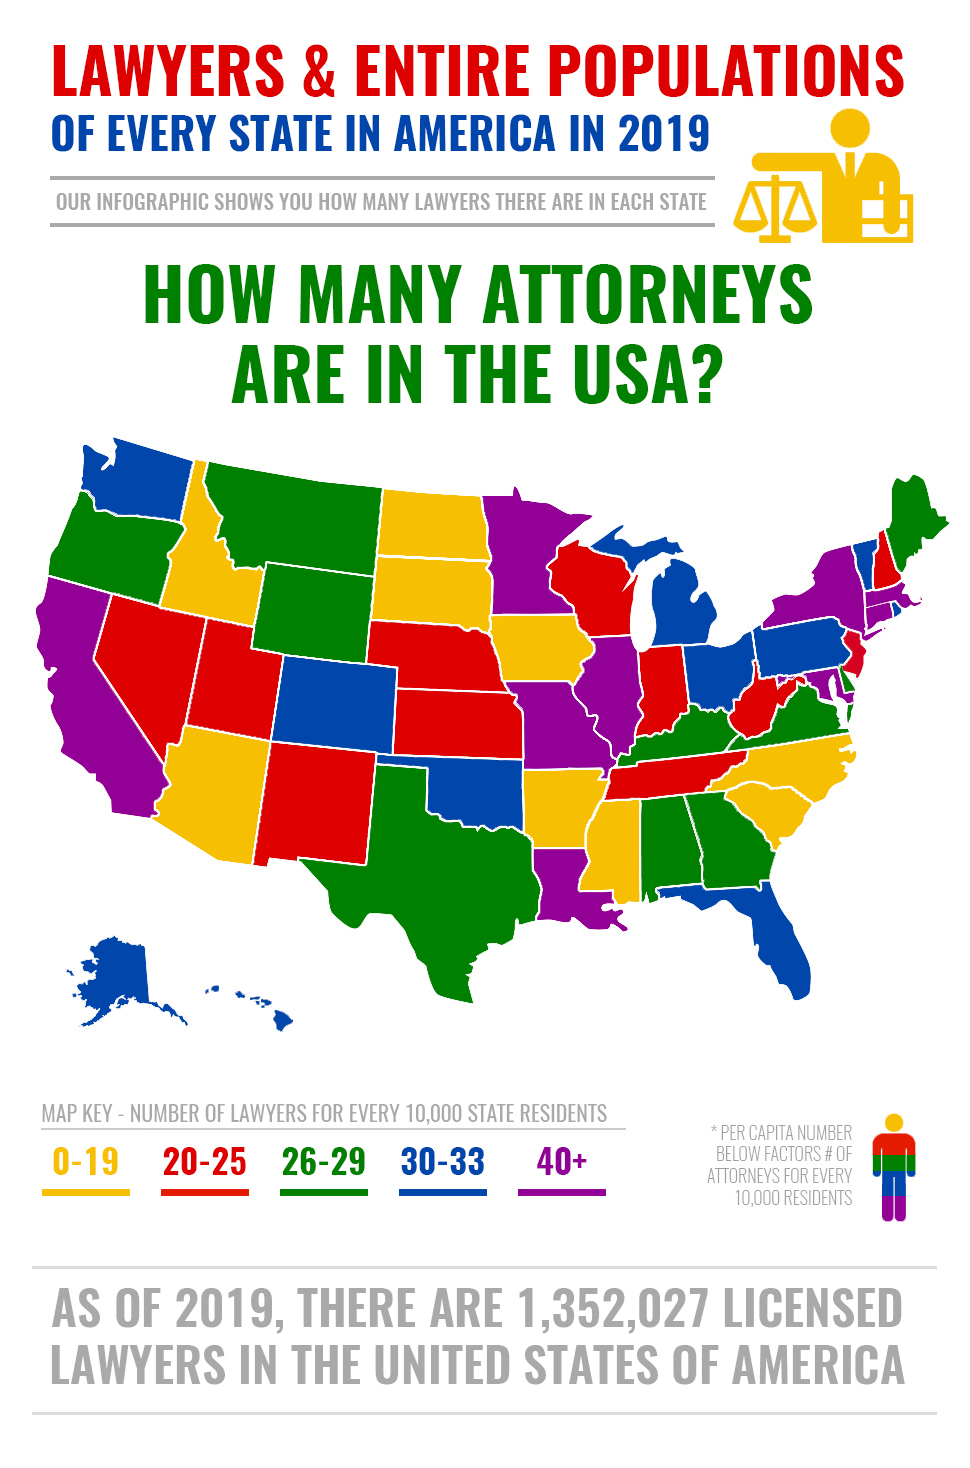 How many attorneys in the US